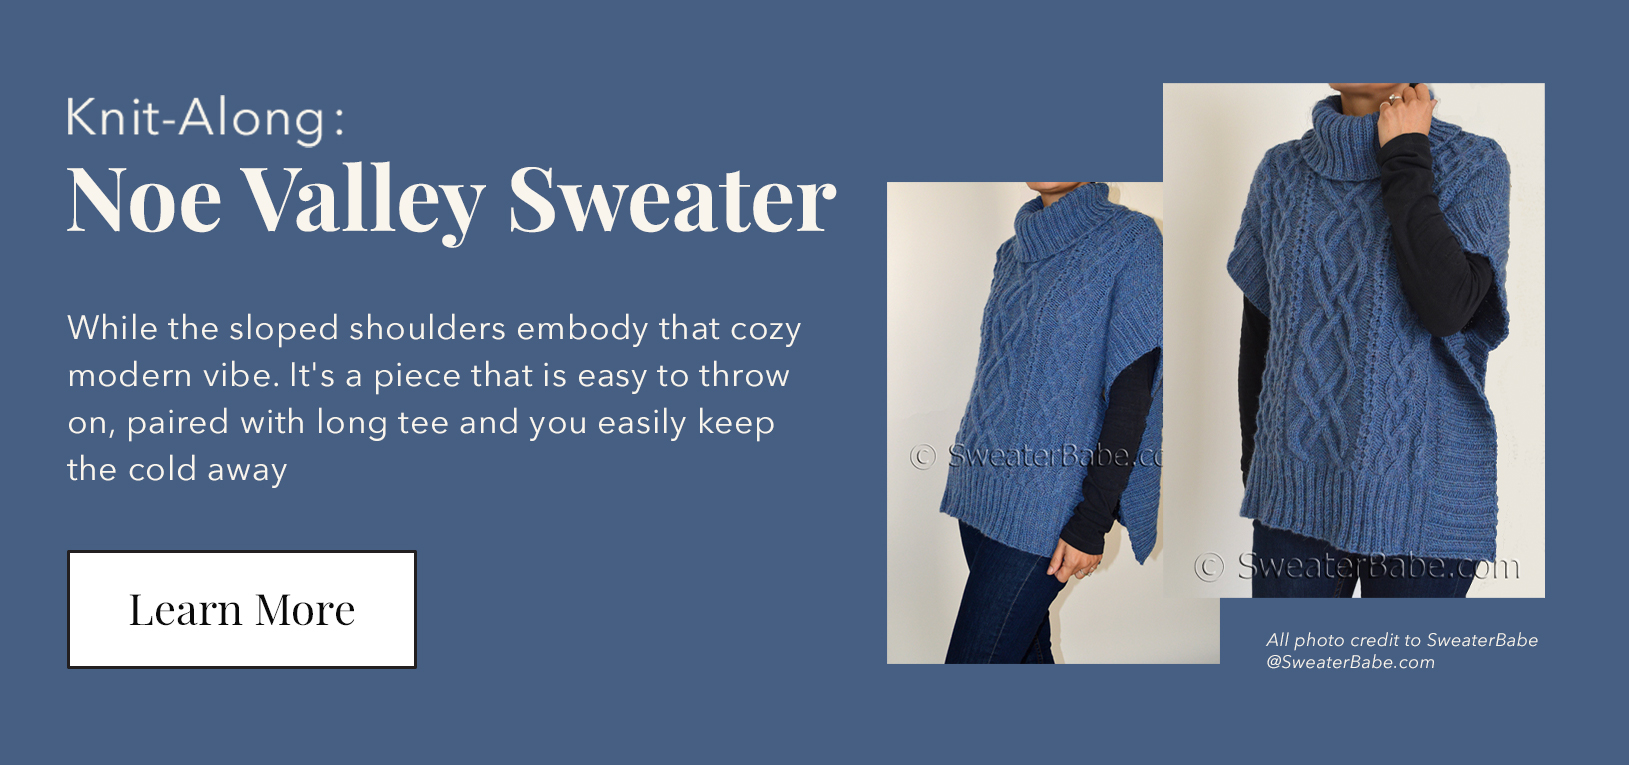 Knit Along: Noe Valley Sweater - While the sloped shoulders embody that cozy modern vibe. It's a piece that is easy to throw on, paired with long tee and you easily keep the cold away